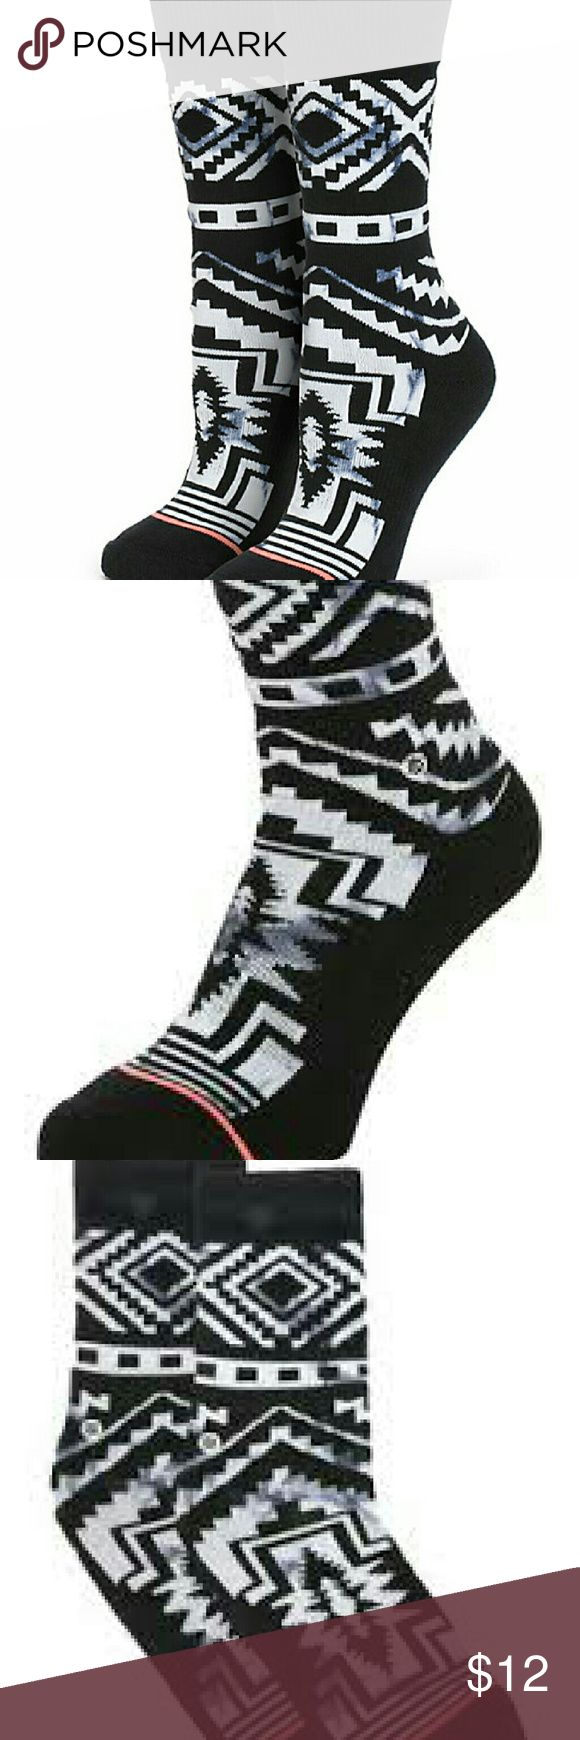 Stance Athletic Socks - NWT Brand new with tags black and white Stance Athletic Socks.  5 pair available for purchase.  (Due to the amount I paid AND Poshmark's 20% fee, I am unable to lower the price UNLESS you buy multiples and/or bundle with other items.)  This listing is only for 1 pair, so message me if you would like more than one. Stance Accessories Hosiery & Socks